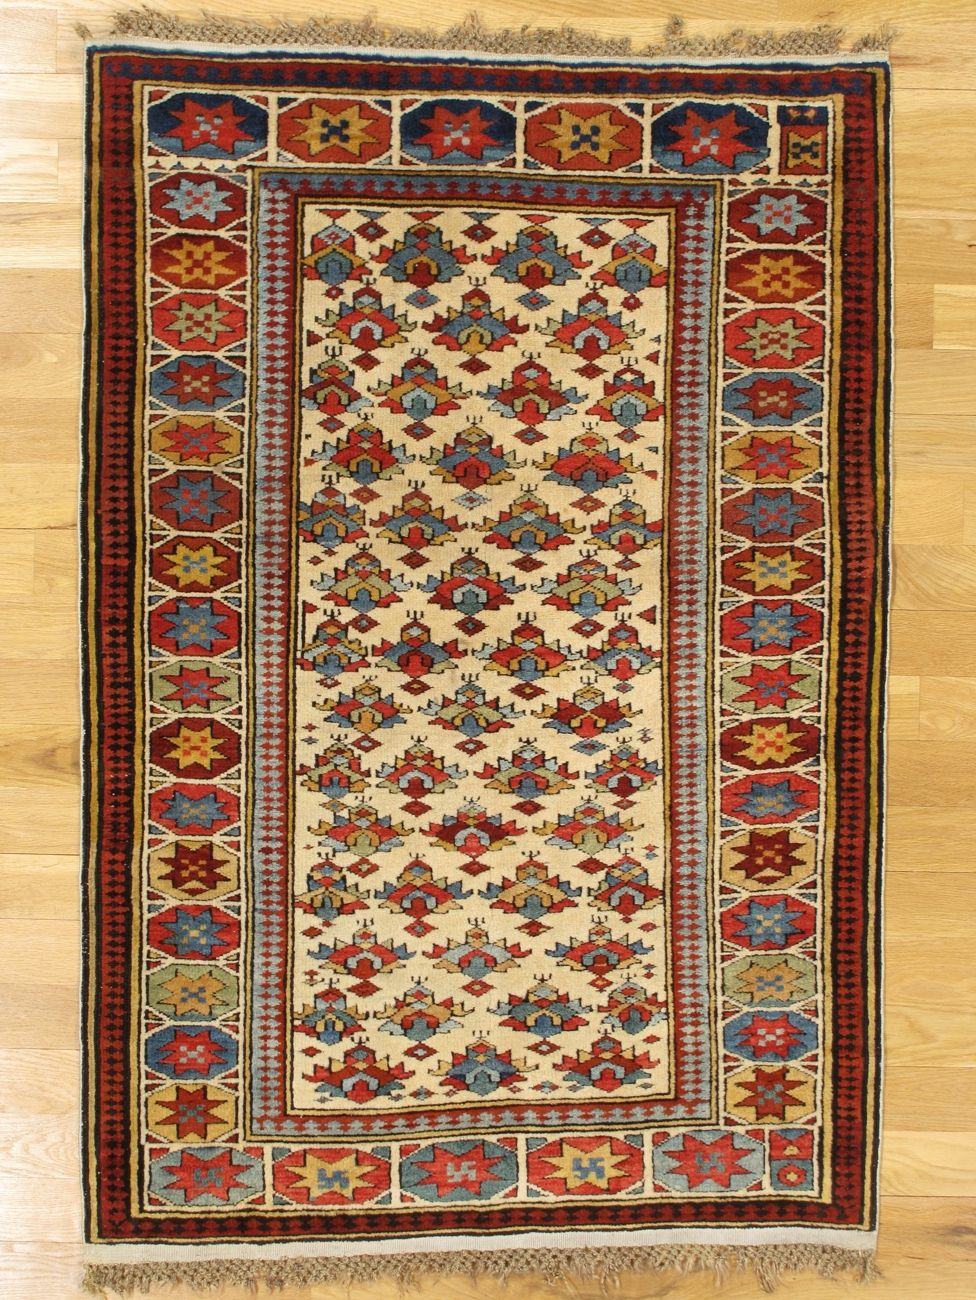 Kuba Rug From Eastern Caucasus West Coast Of The Caspian Sea Age Circa 1875 Size 4 11 X3 5 150x104 Cm Sold Rugs On Carpet Rugs Antique Carpets